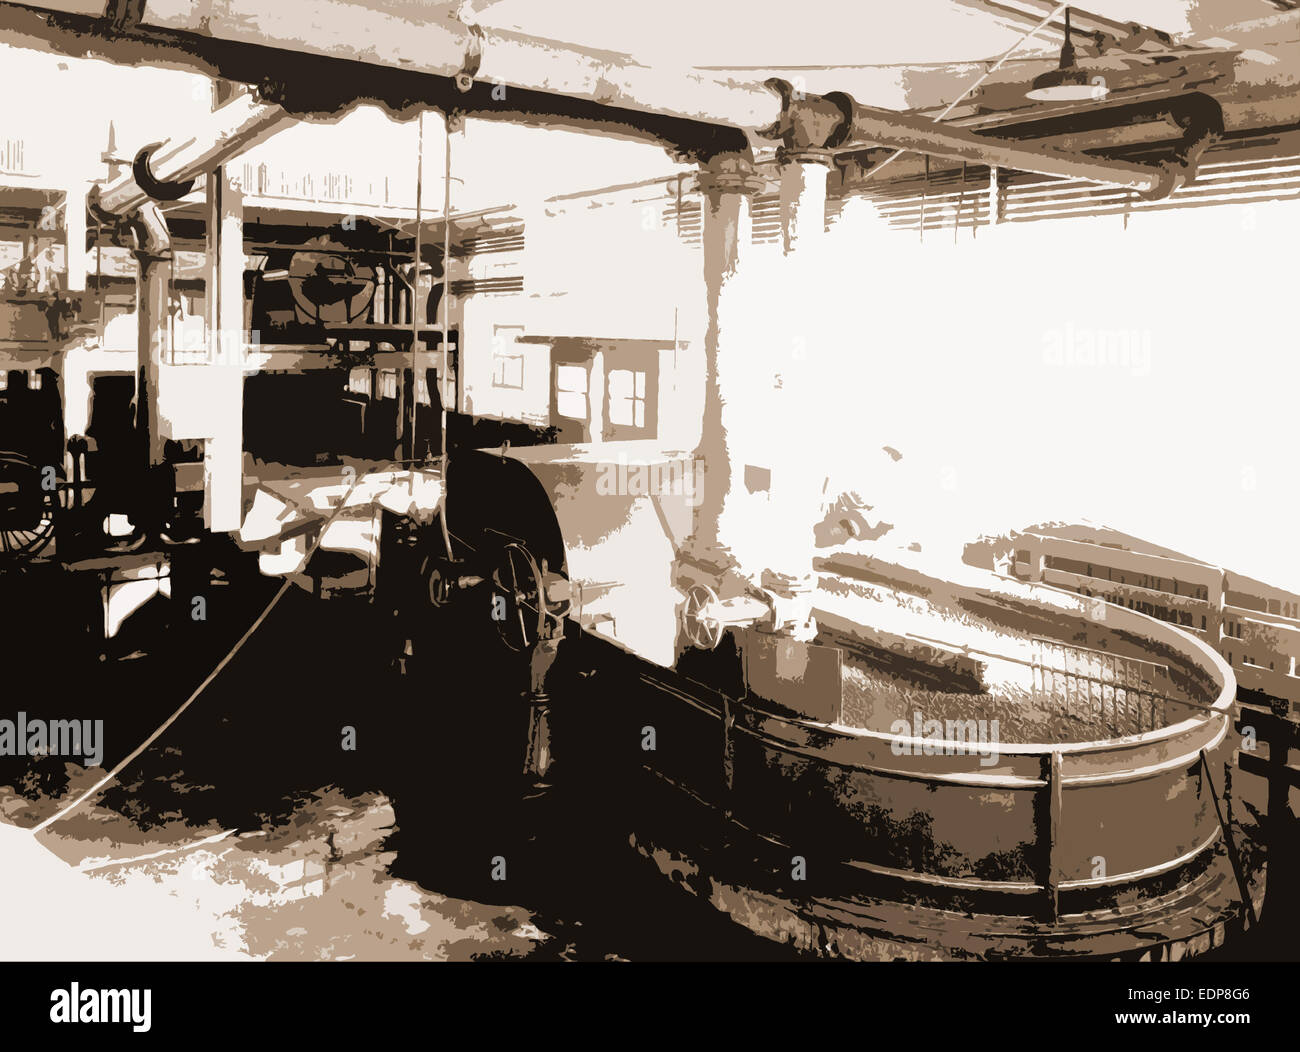 The Pulp is ground and sizing added, Paper industry, 1922 - Stock Image